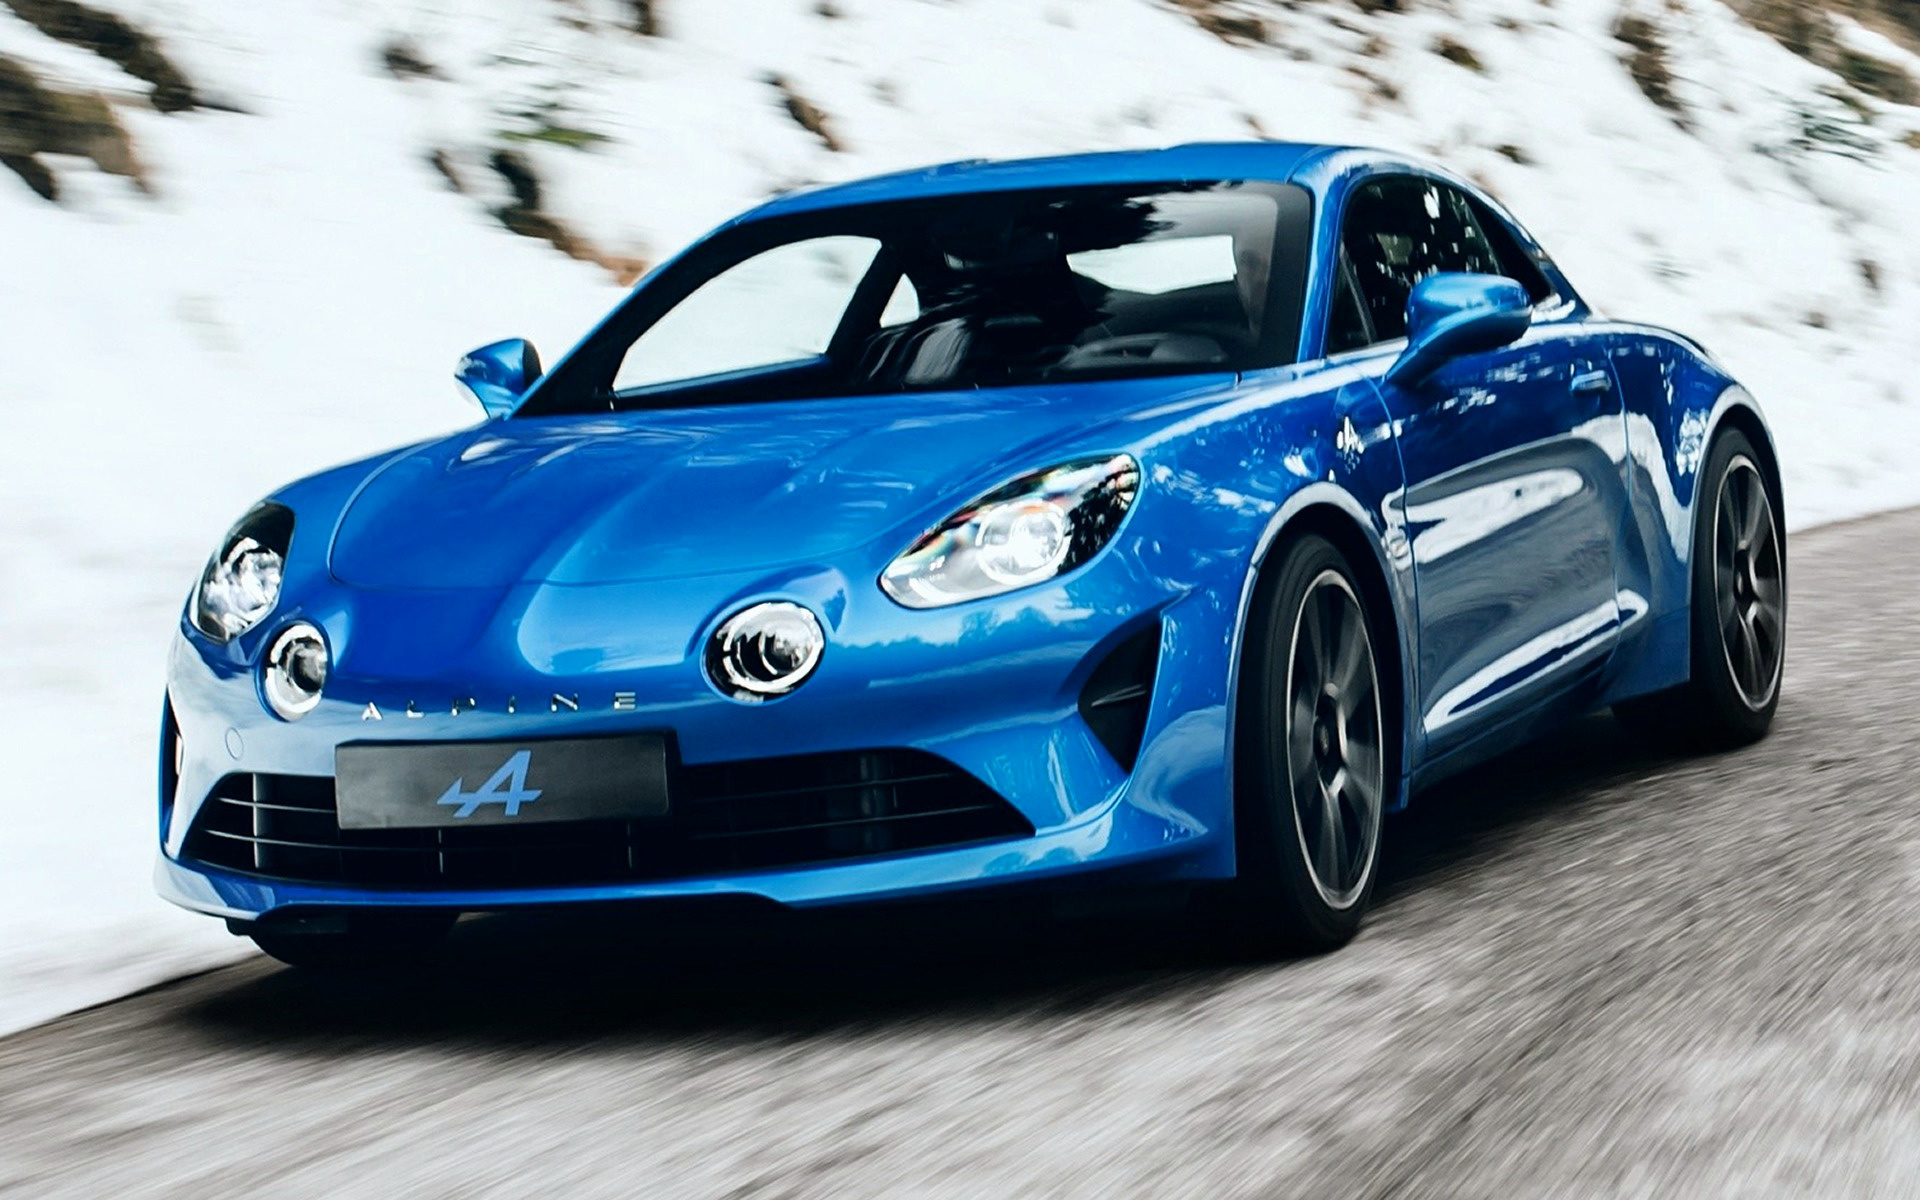 Hd Nissan Wallpaper 2017 Alpine A110 Premiere Edition Wallpapers And Hd